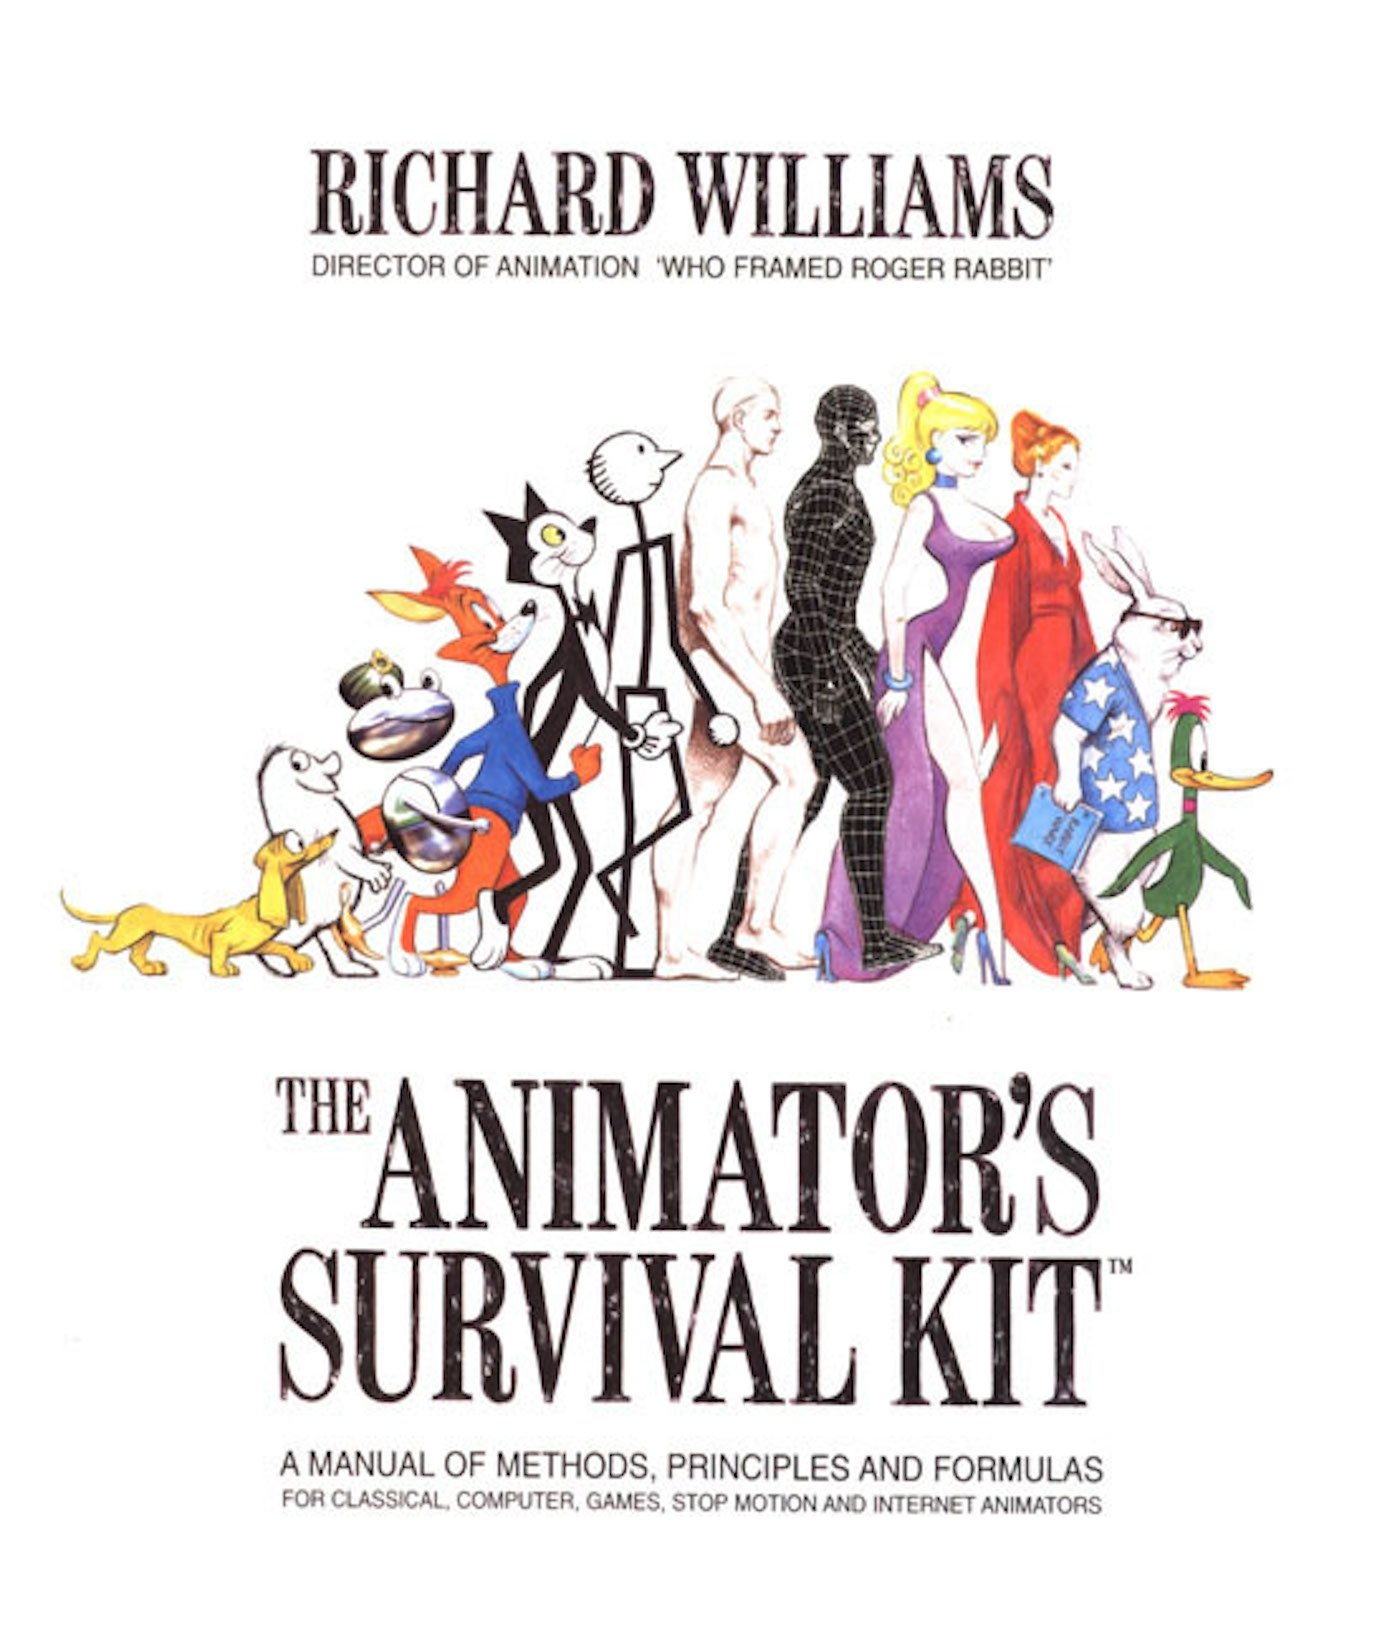 The Animator's Survival Kit: A Manual of Methods, Principles and Formulas for Classical, Computer, Games, Stop Motion and Internet Animators by Faber Faber